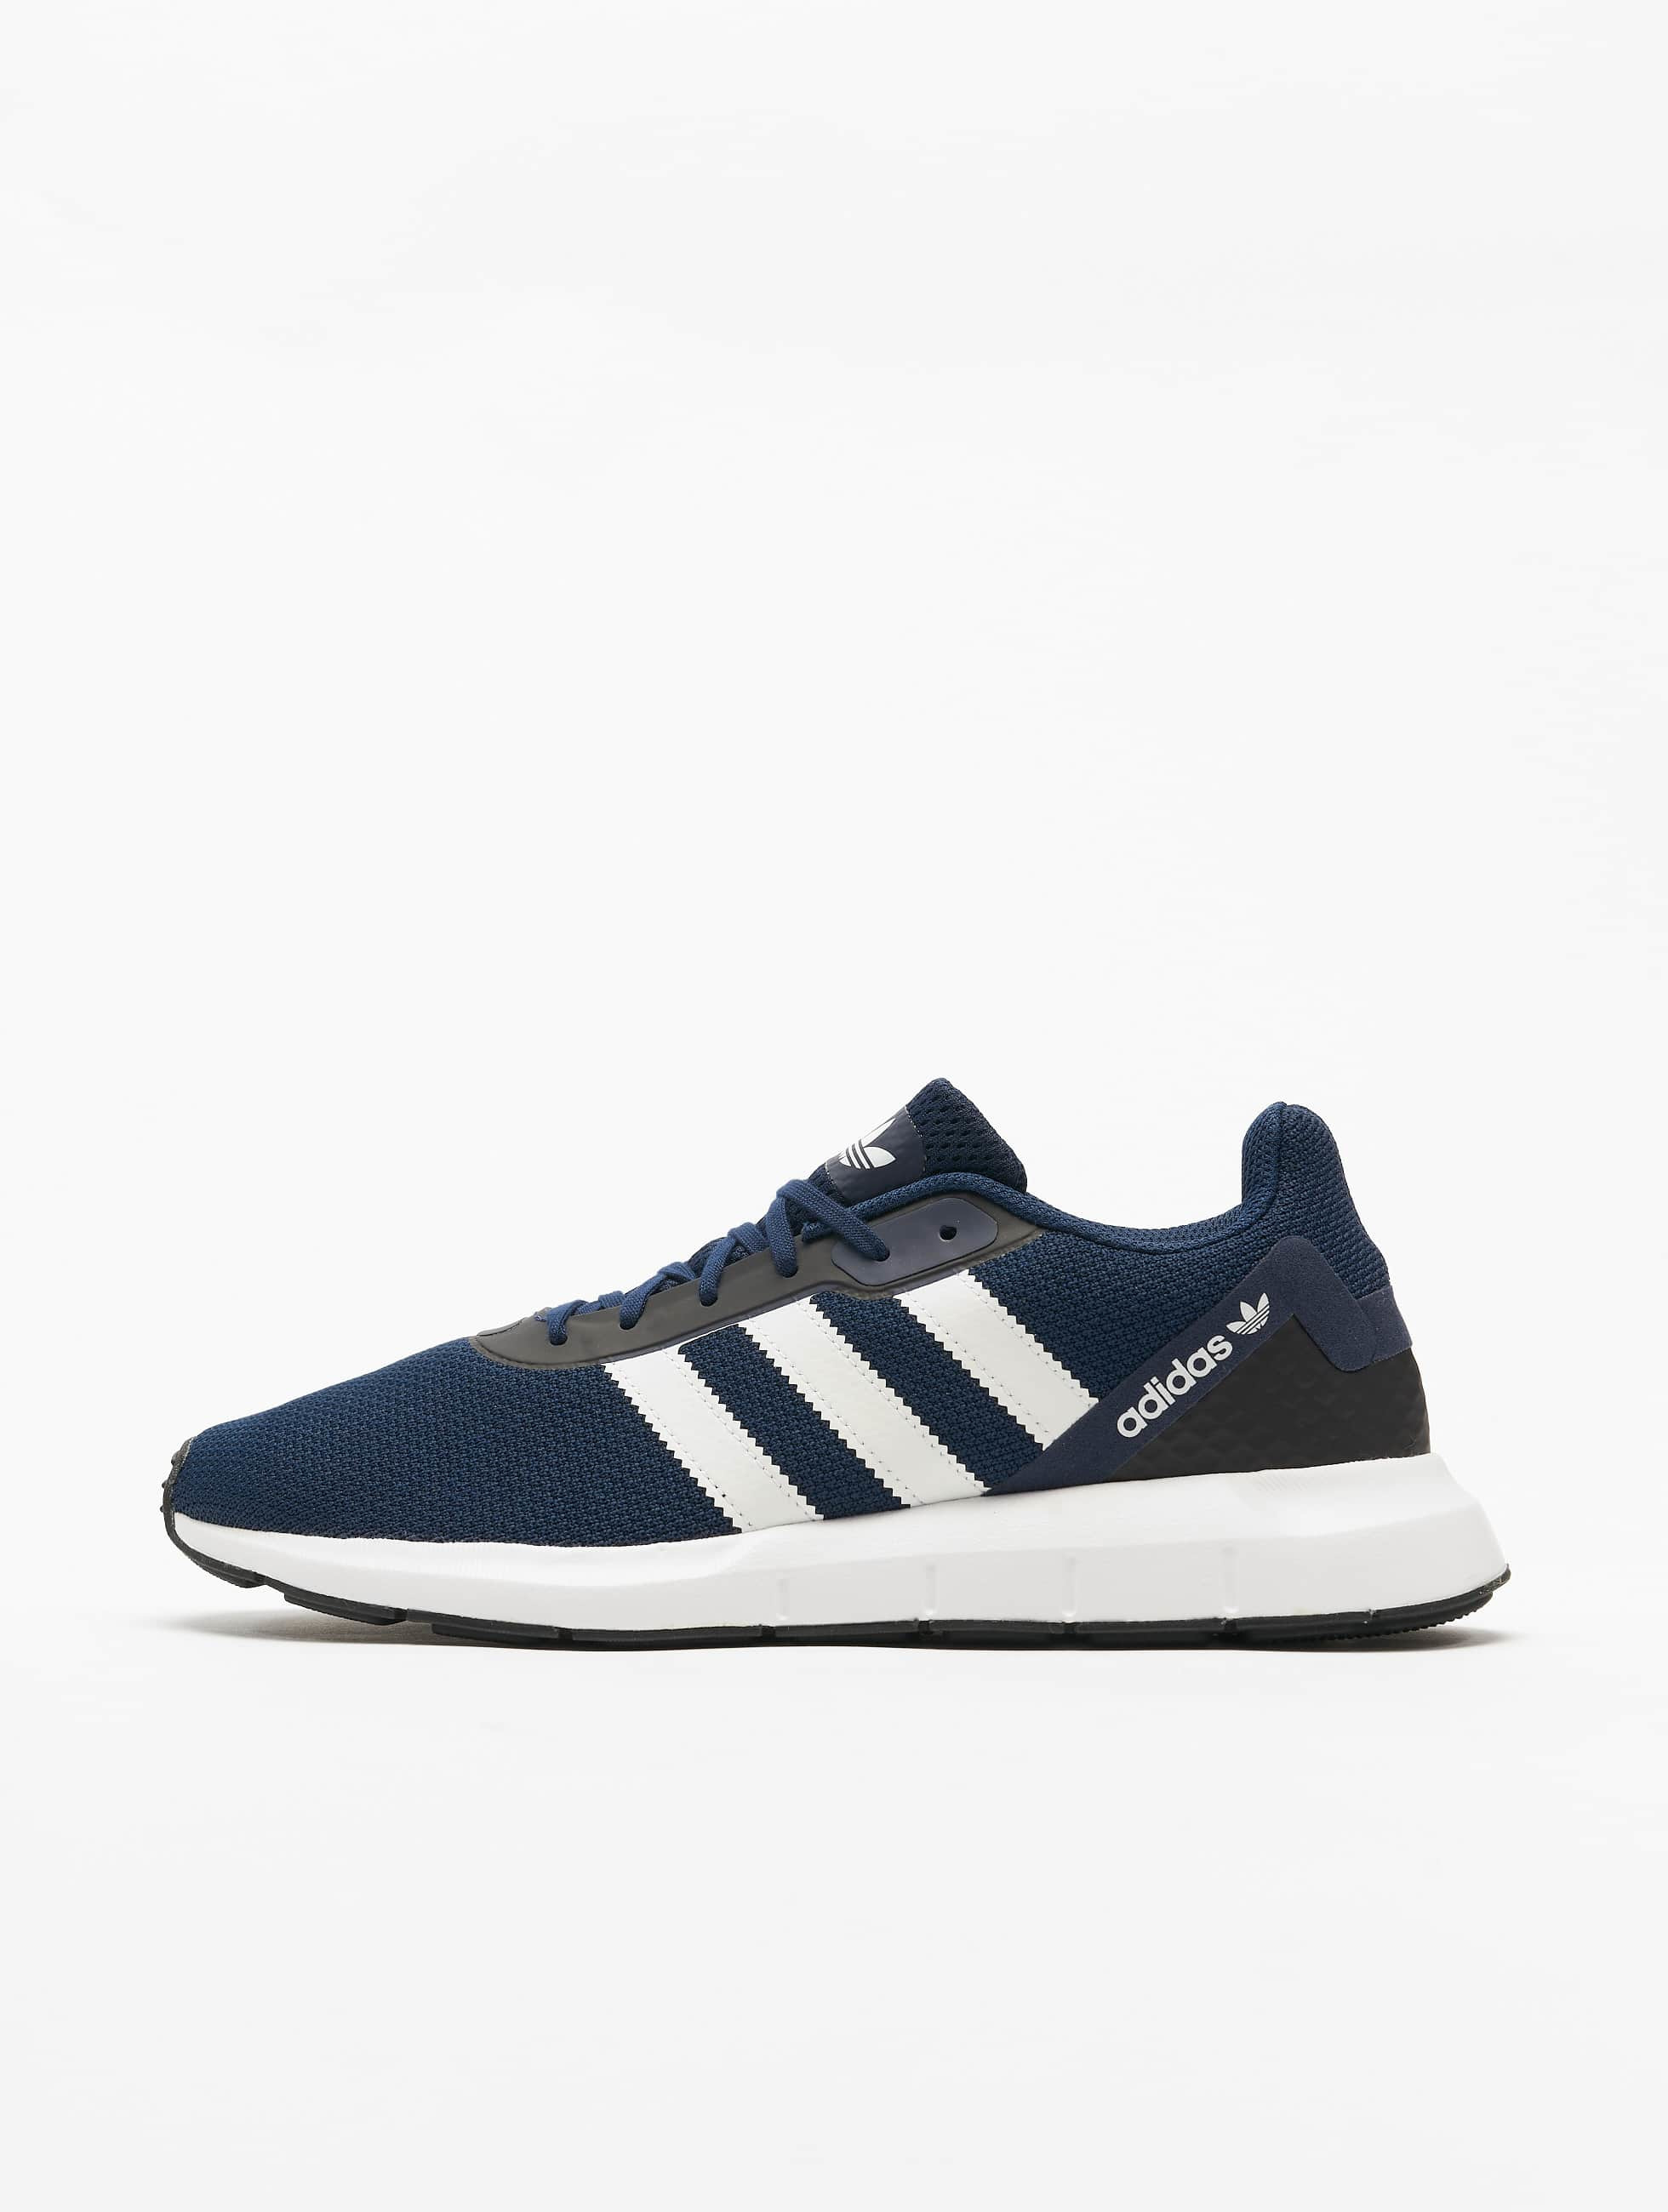 Adidas Originals Swift Run RF Sneakers Collegiate NavyFtwr WhiteCore Black